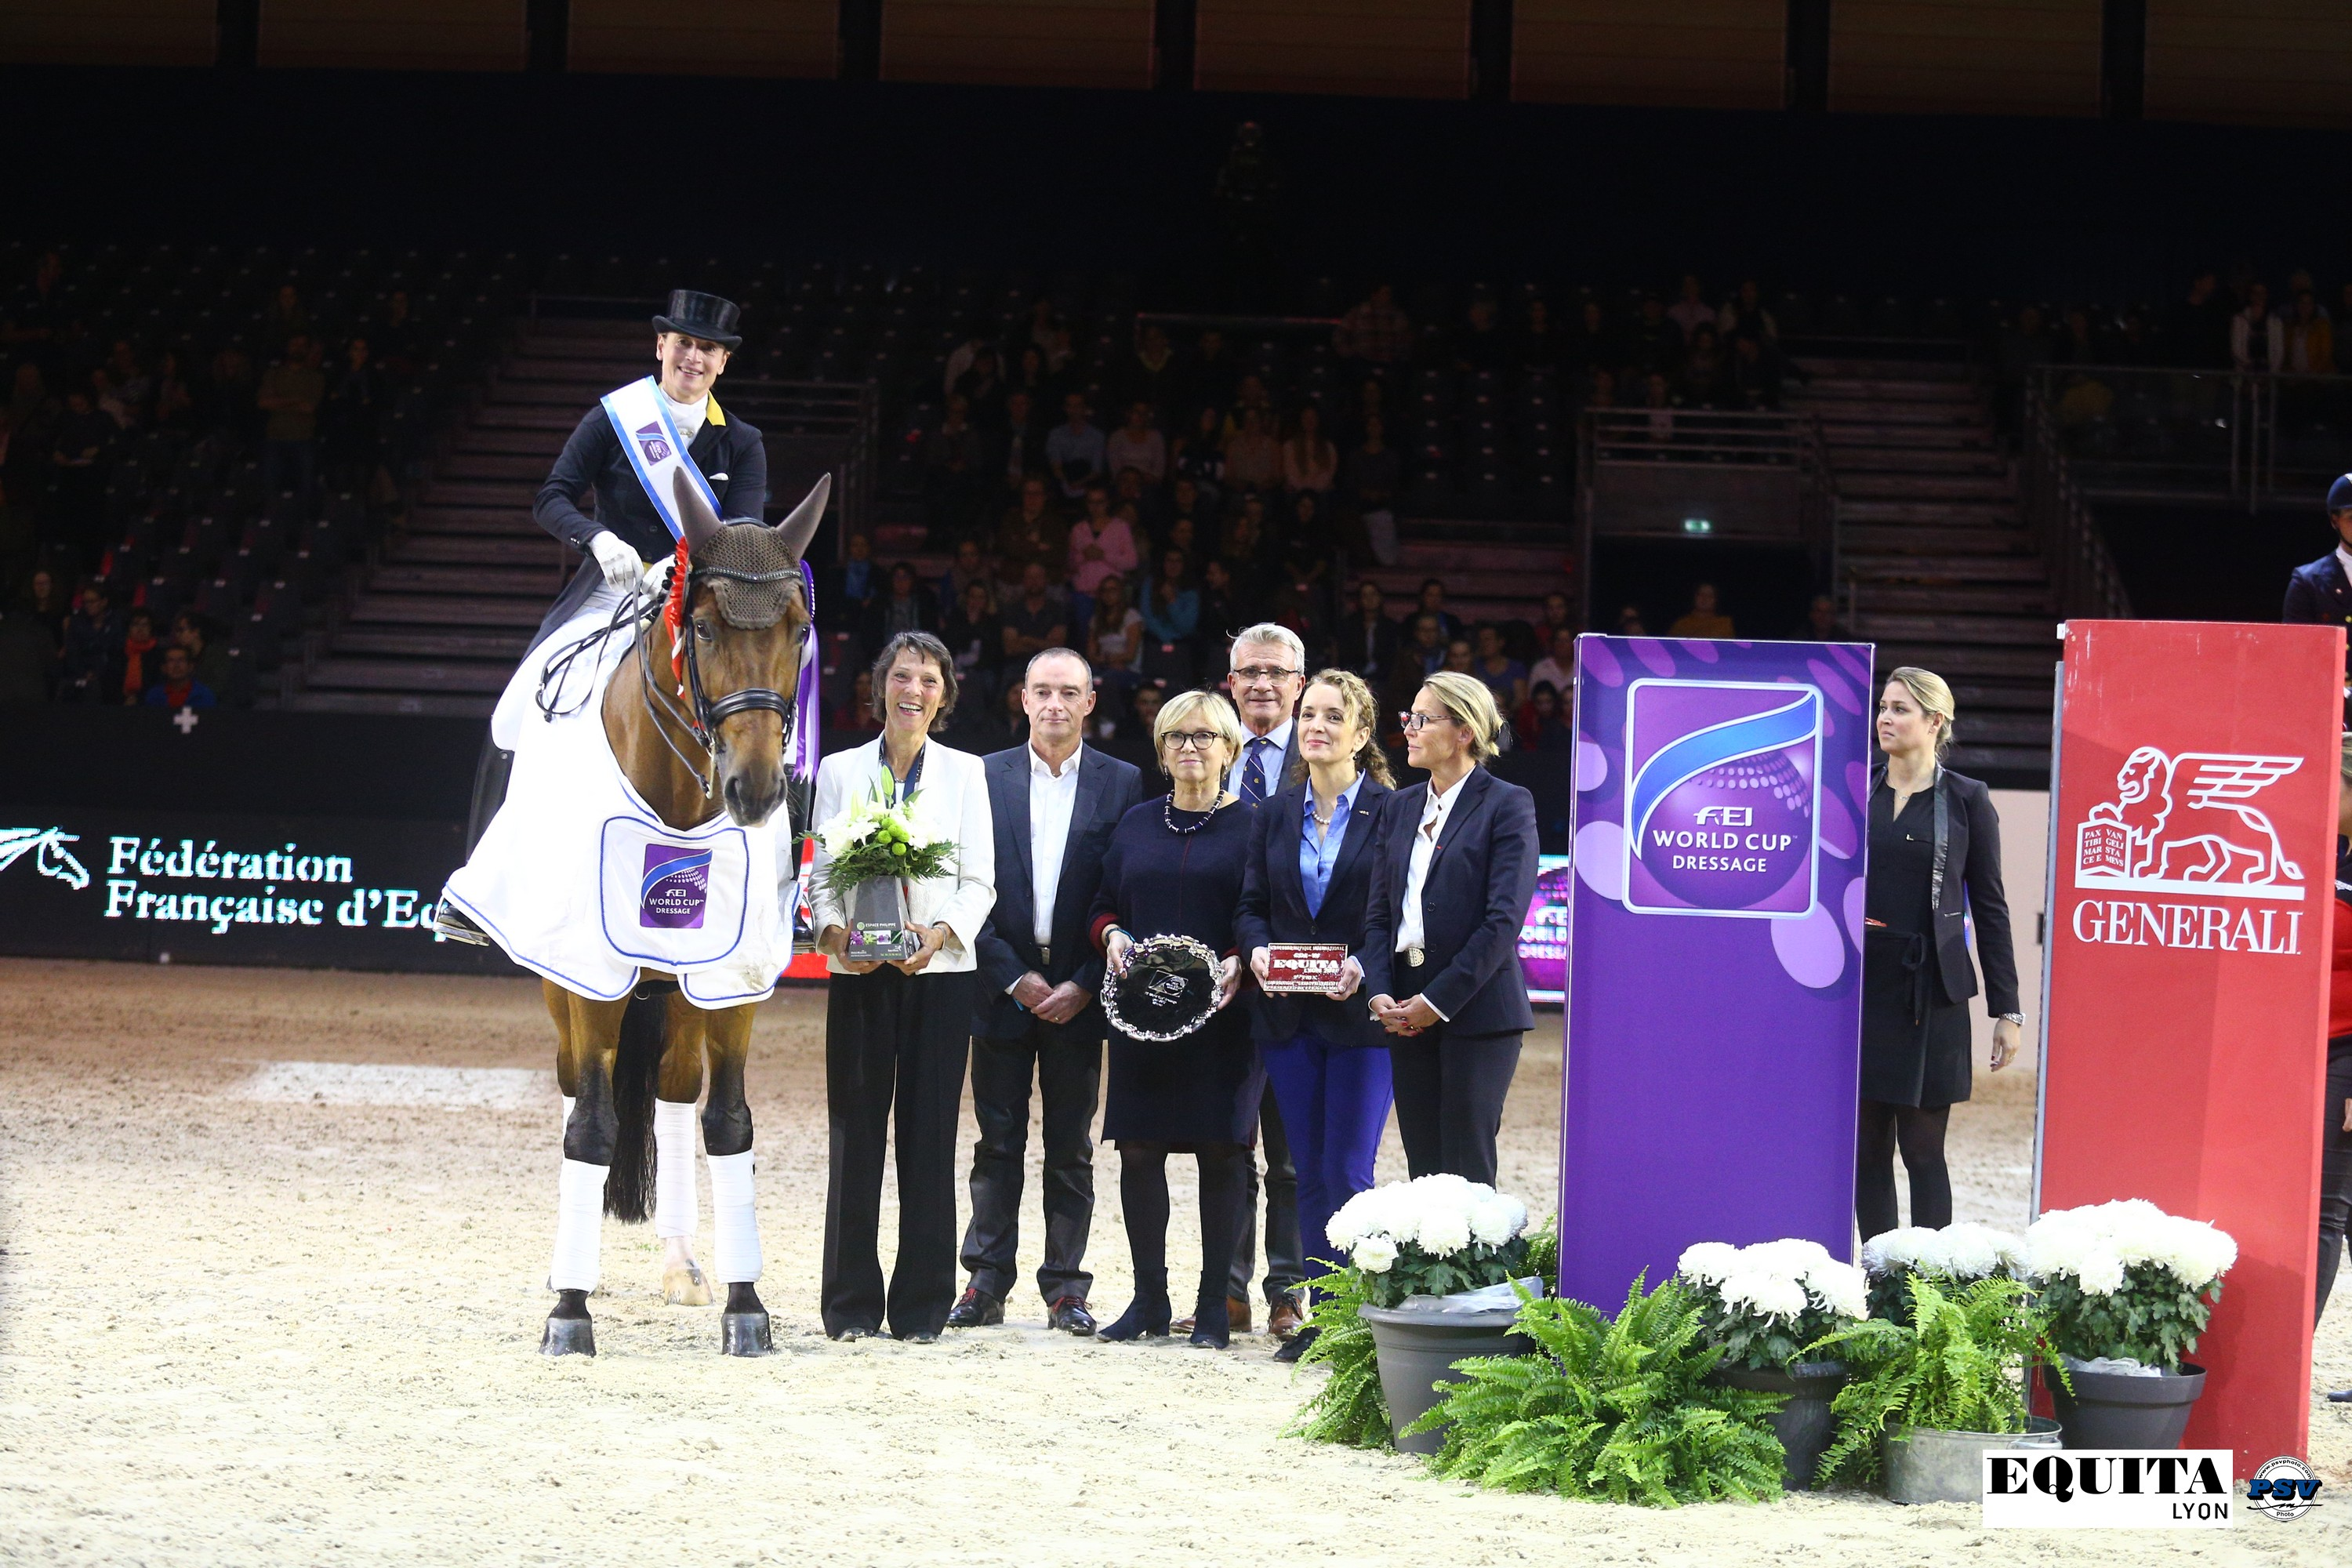 Horse Times Egypt: Equestrian Magazine :News : LYON FEI WORLD CUP DRESSAGE: A LEGEND OF EQUESTRIAN SPORT WINS IN LYON